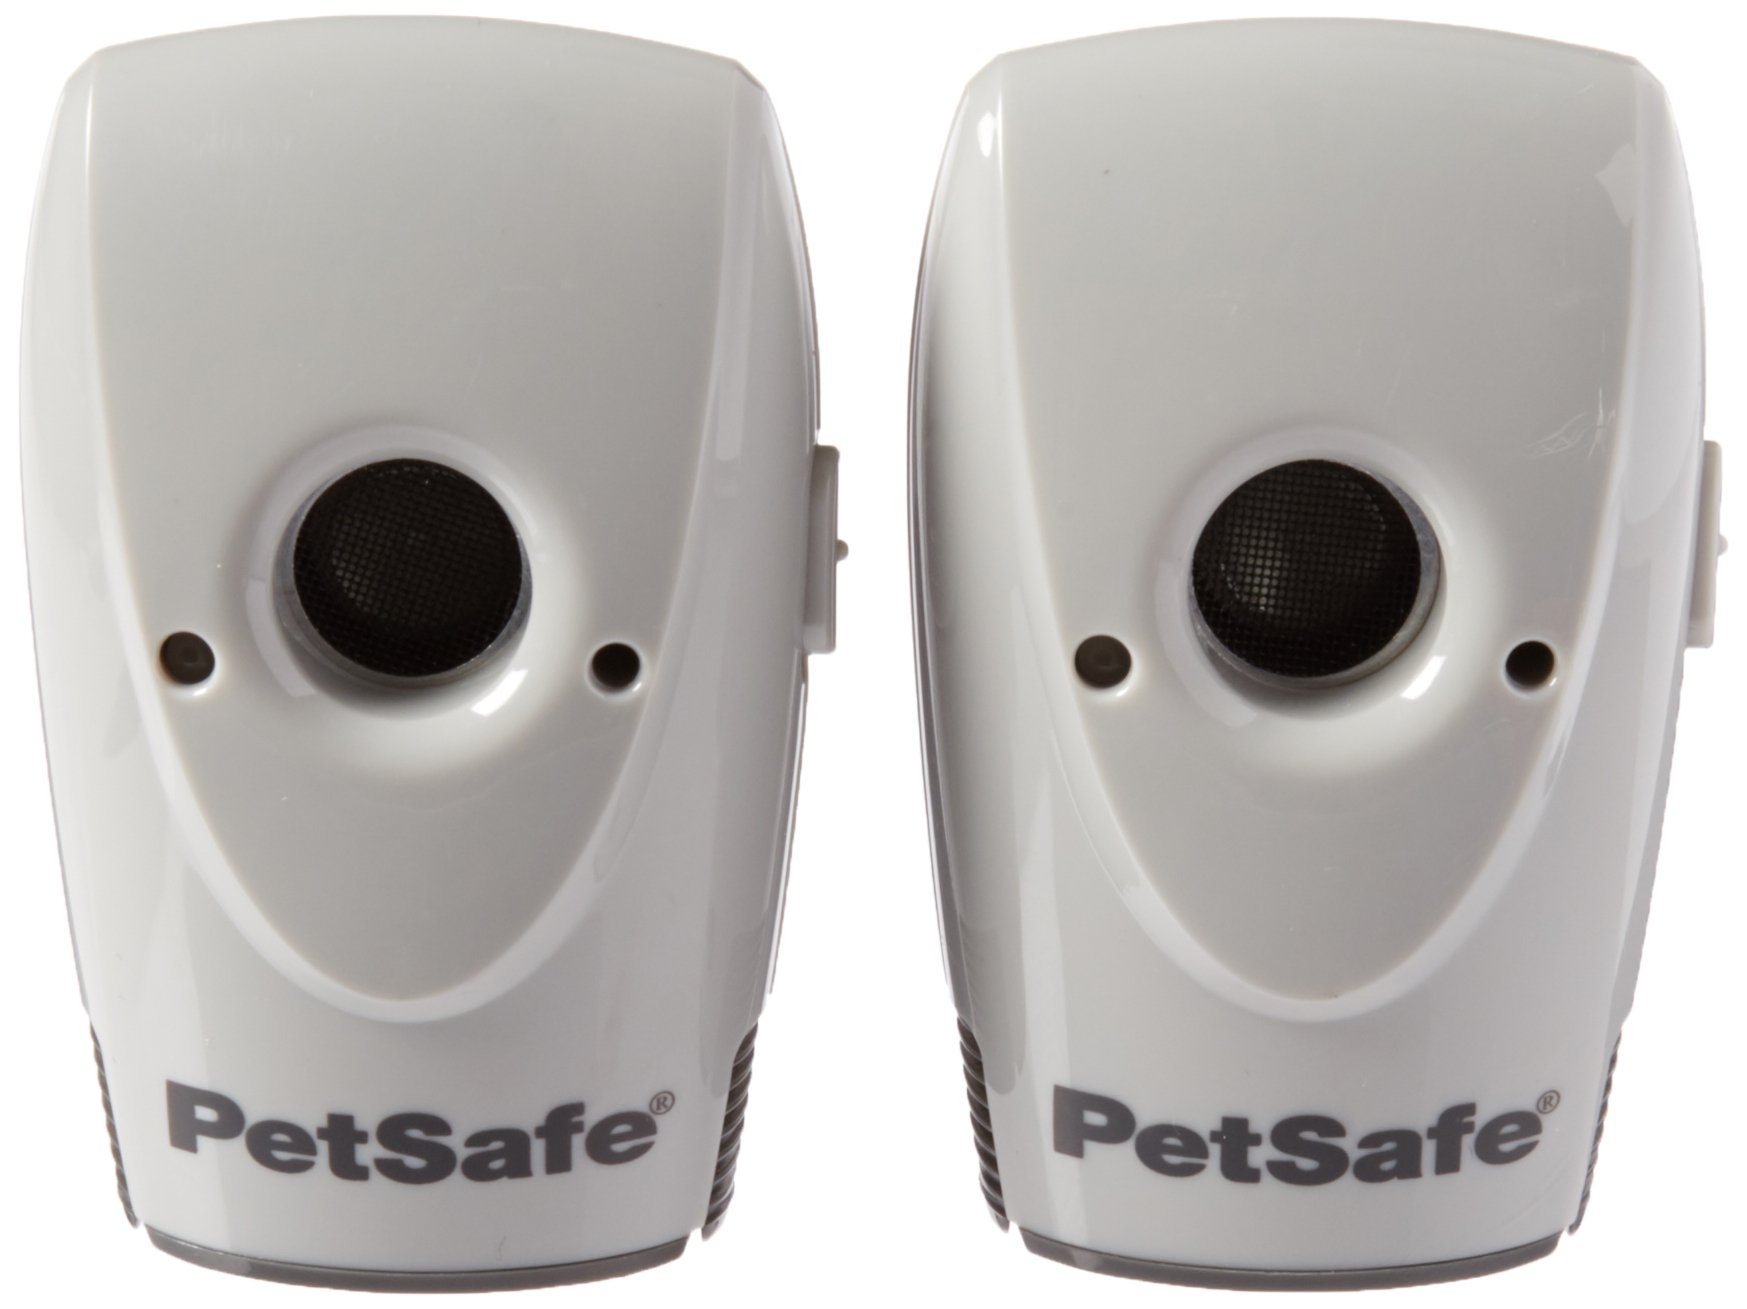 PetSafe Multi-Room Indoor Bark Control - Ultrasonic Deviceto Deter Barking Dogs - No Collar Needed by PetSafe